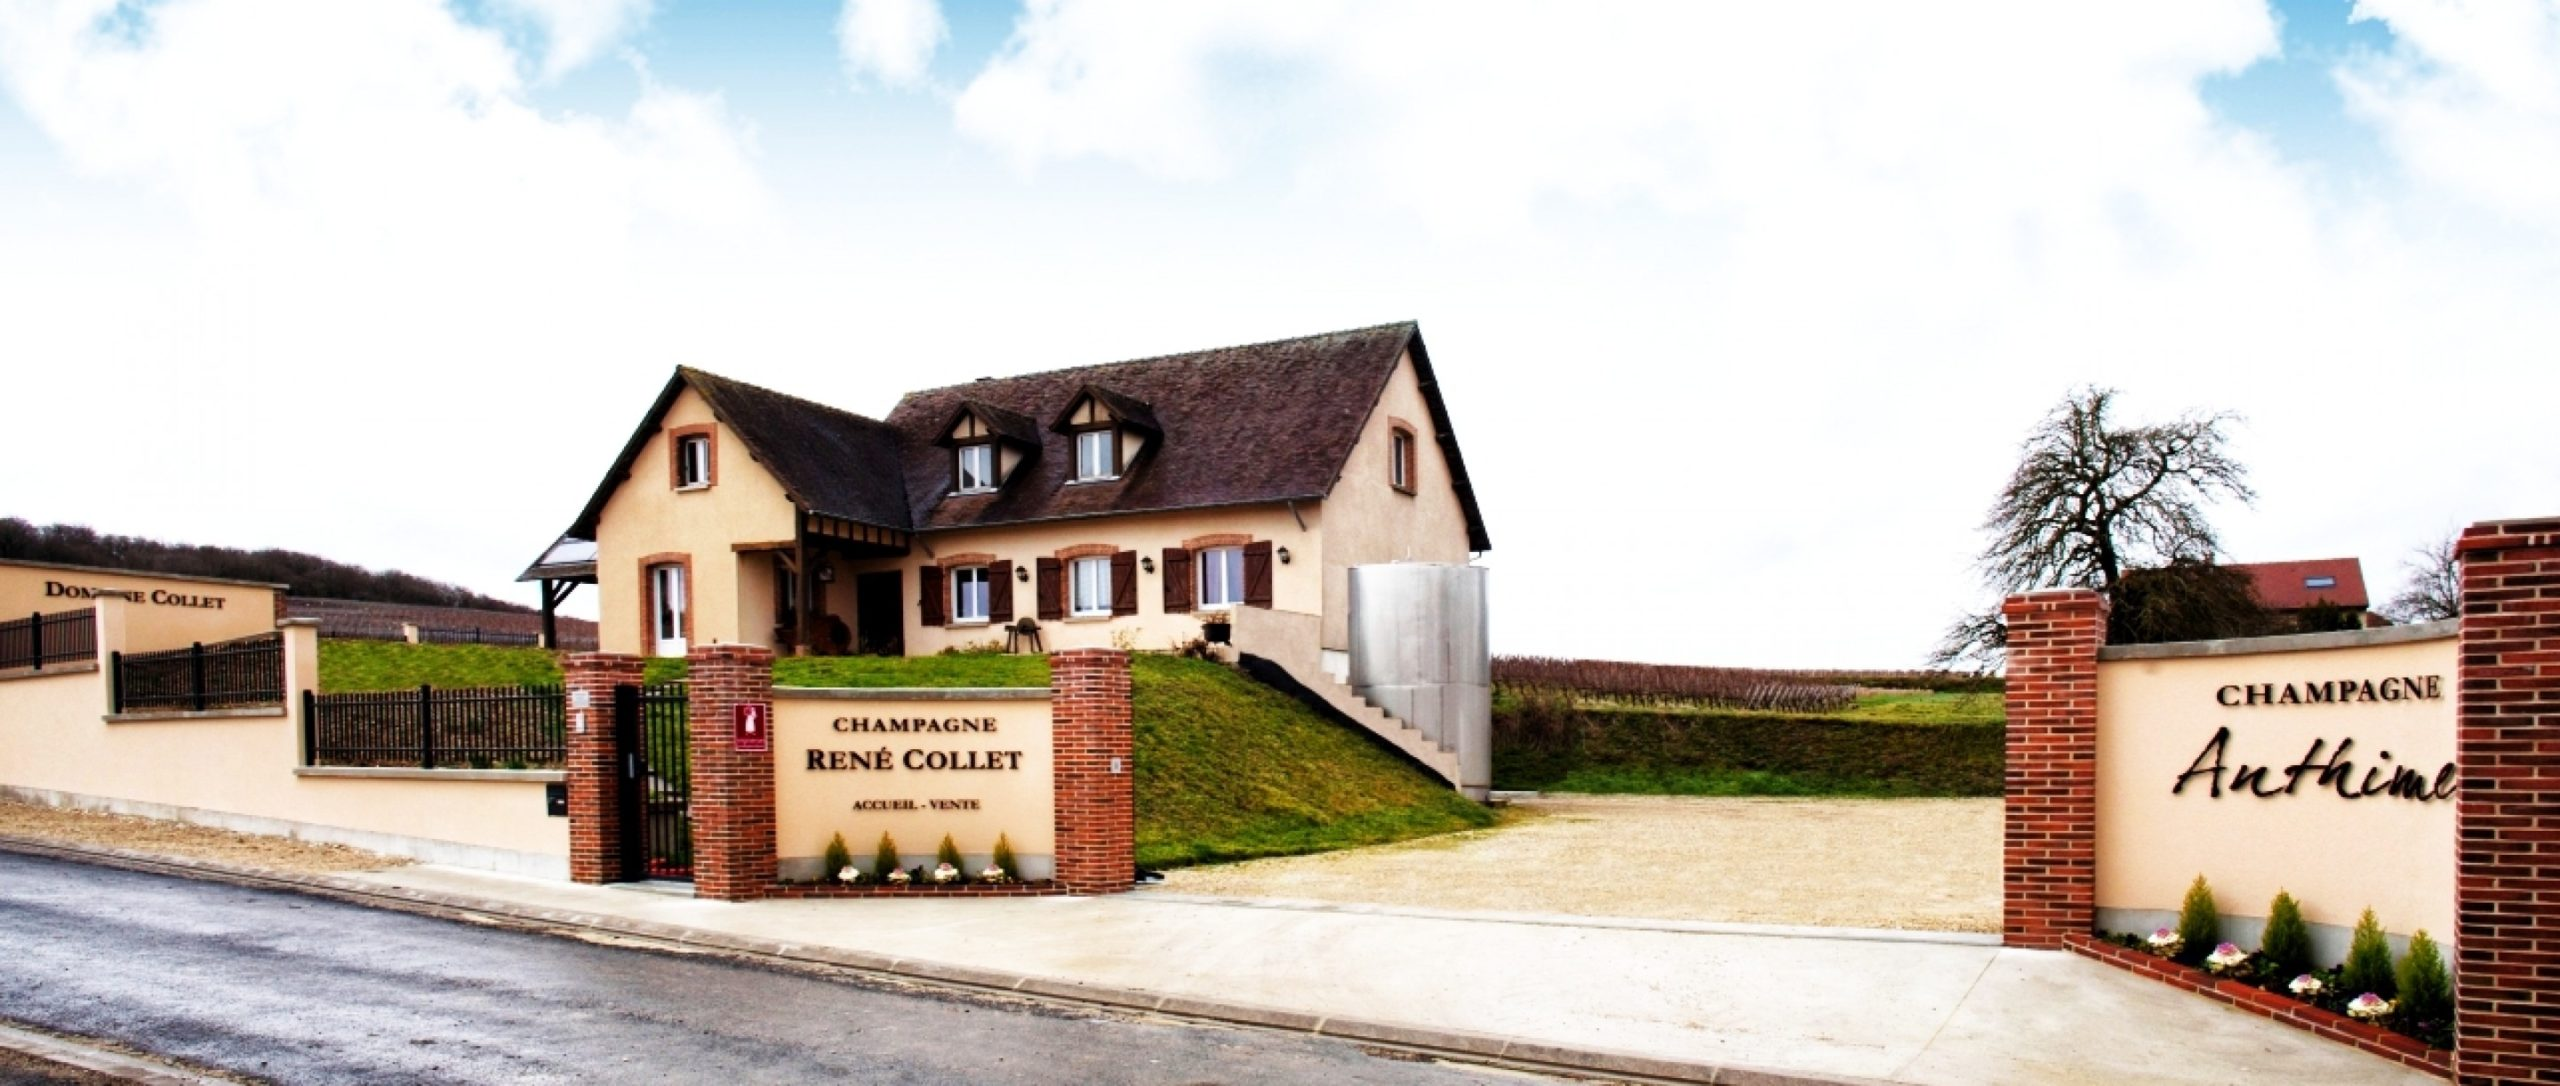 Domaine Collet-Champagne